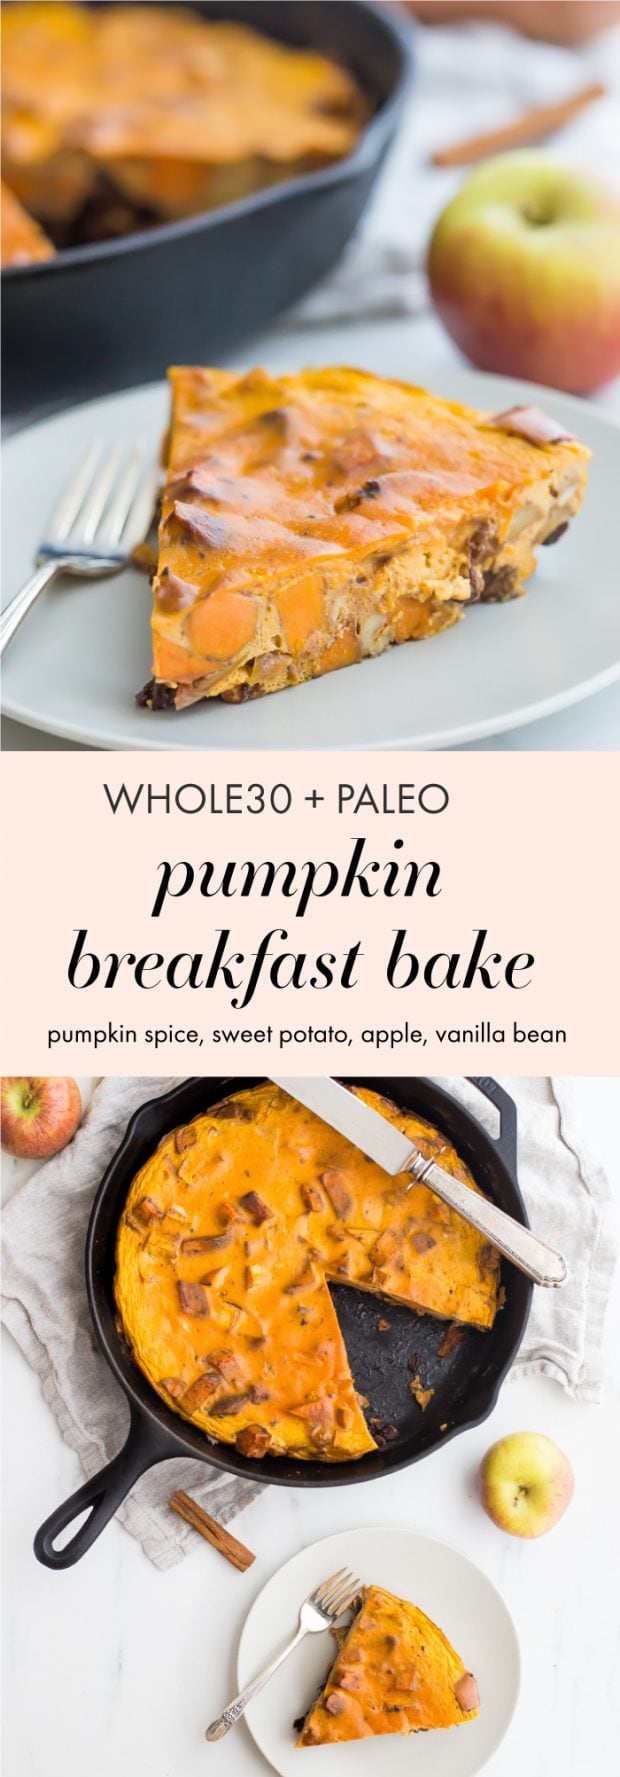 This Whole30 pumpkin breakfast bake is an autumn dream! With sweet potatoes, apples, pumpkin, pumpkin spice, walnuts, vanilla bean, and plenty of eggs for protein, you'll fall head over heels in love with this Whole30 breakfast bake. Pretty sure this Whole30 pumpkin breakfast bake could save a soul or two on a round, and it might just become your favorite Whole30 breakfast bake altogether!